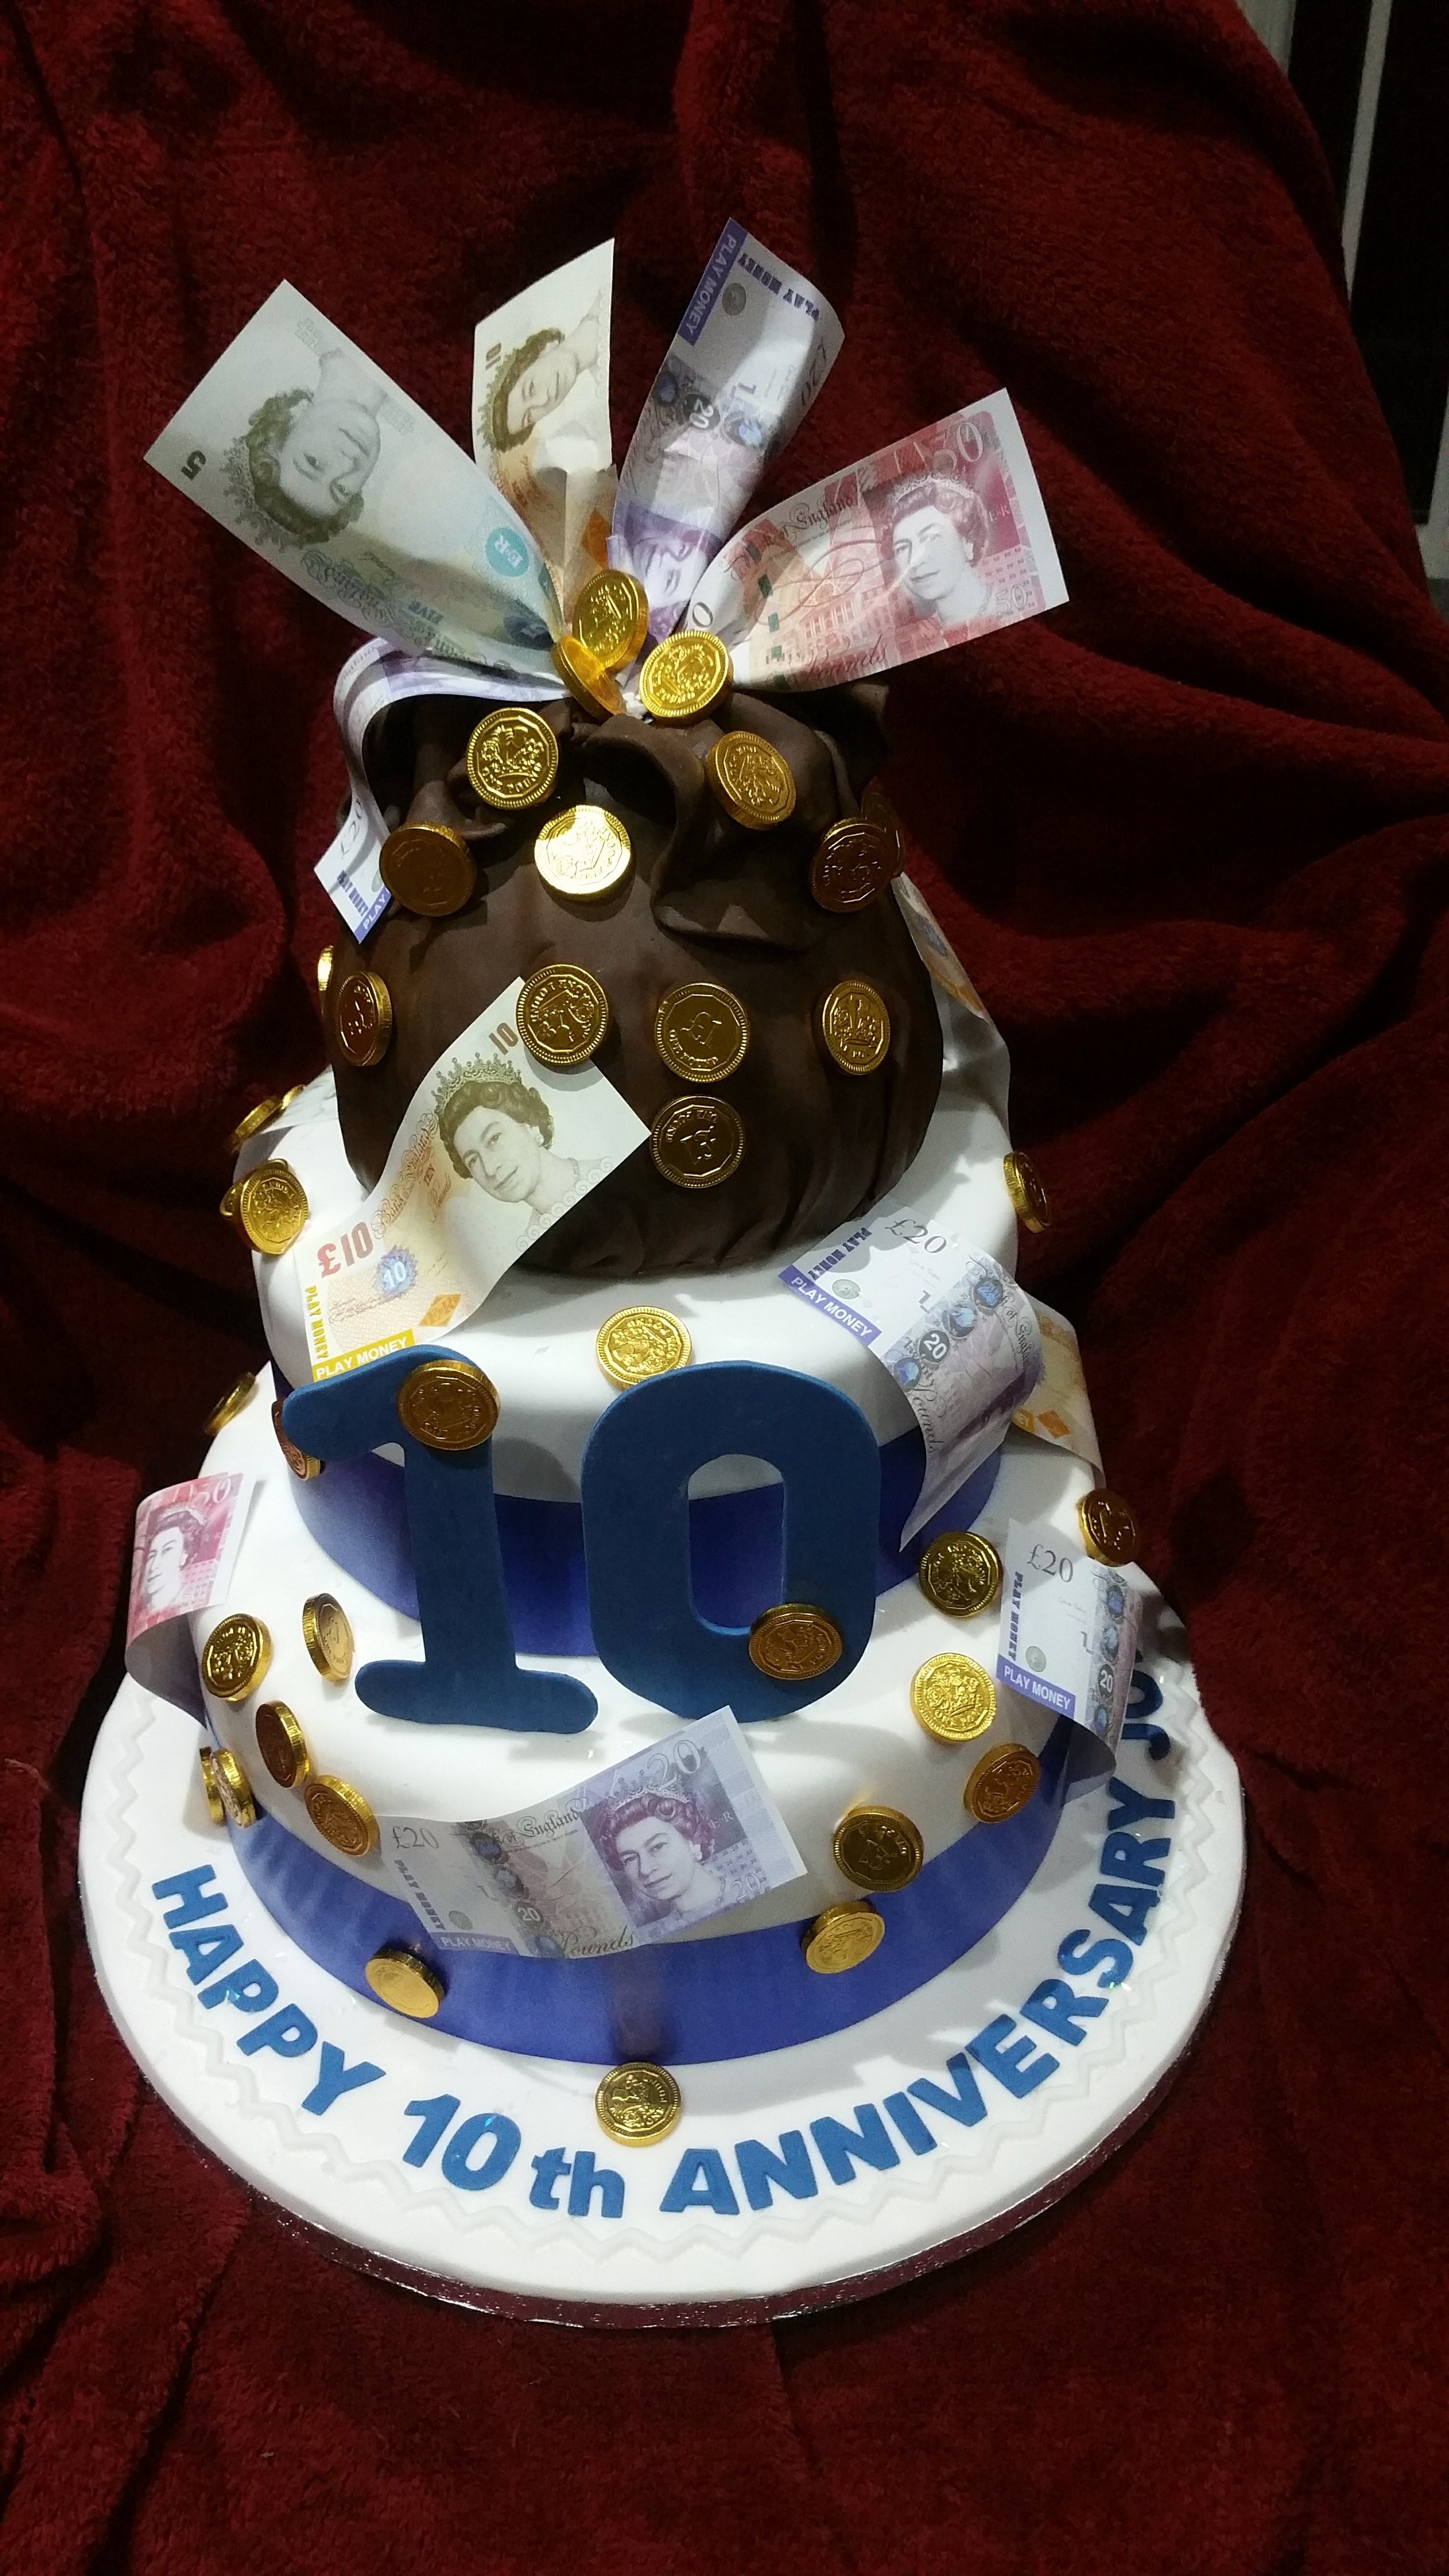 Anniversary for an Accountant - This fun cake was made for an important Accountant in a client's office. We designed and made a money bags cake for him, which he was delighted to receive and share.